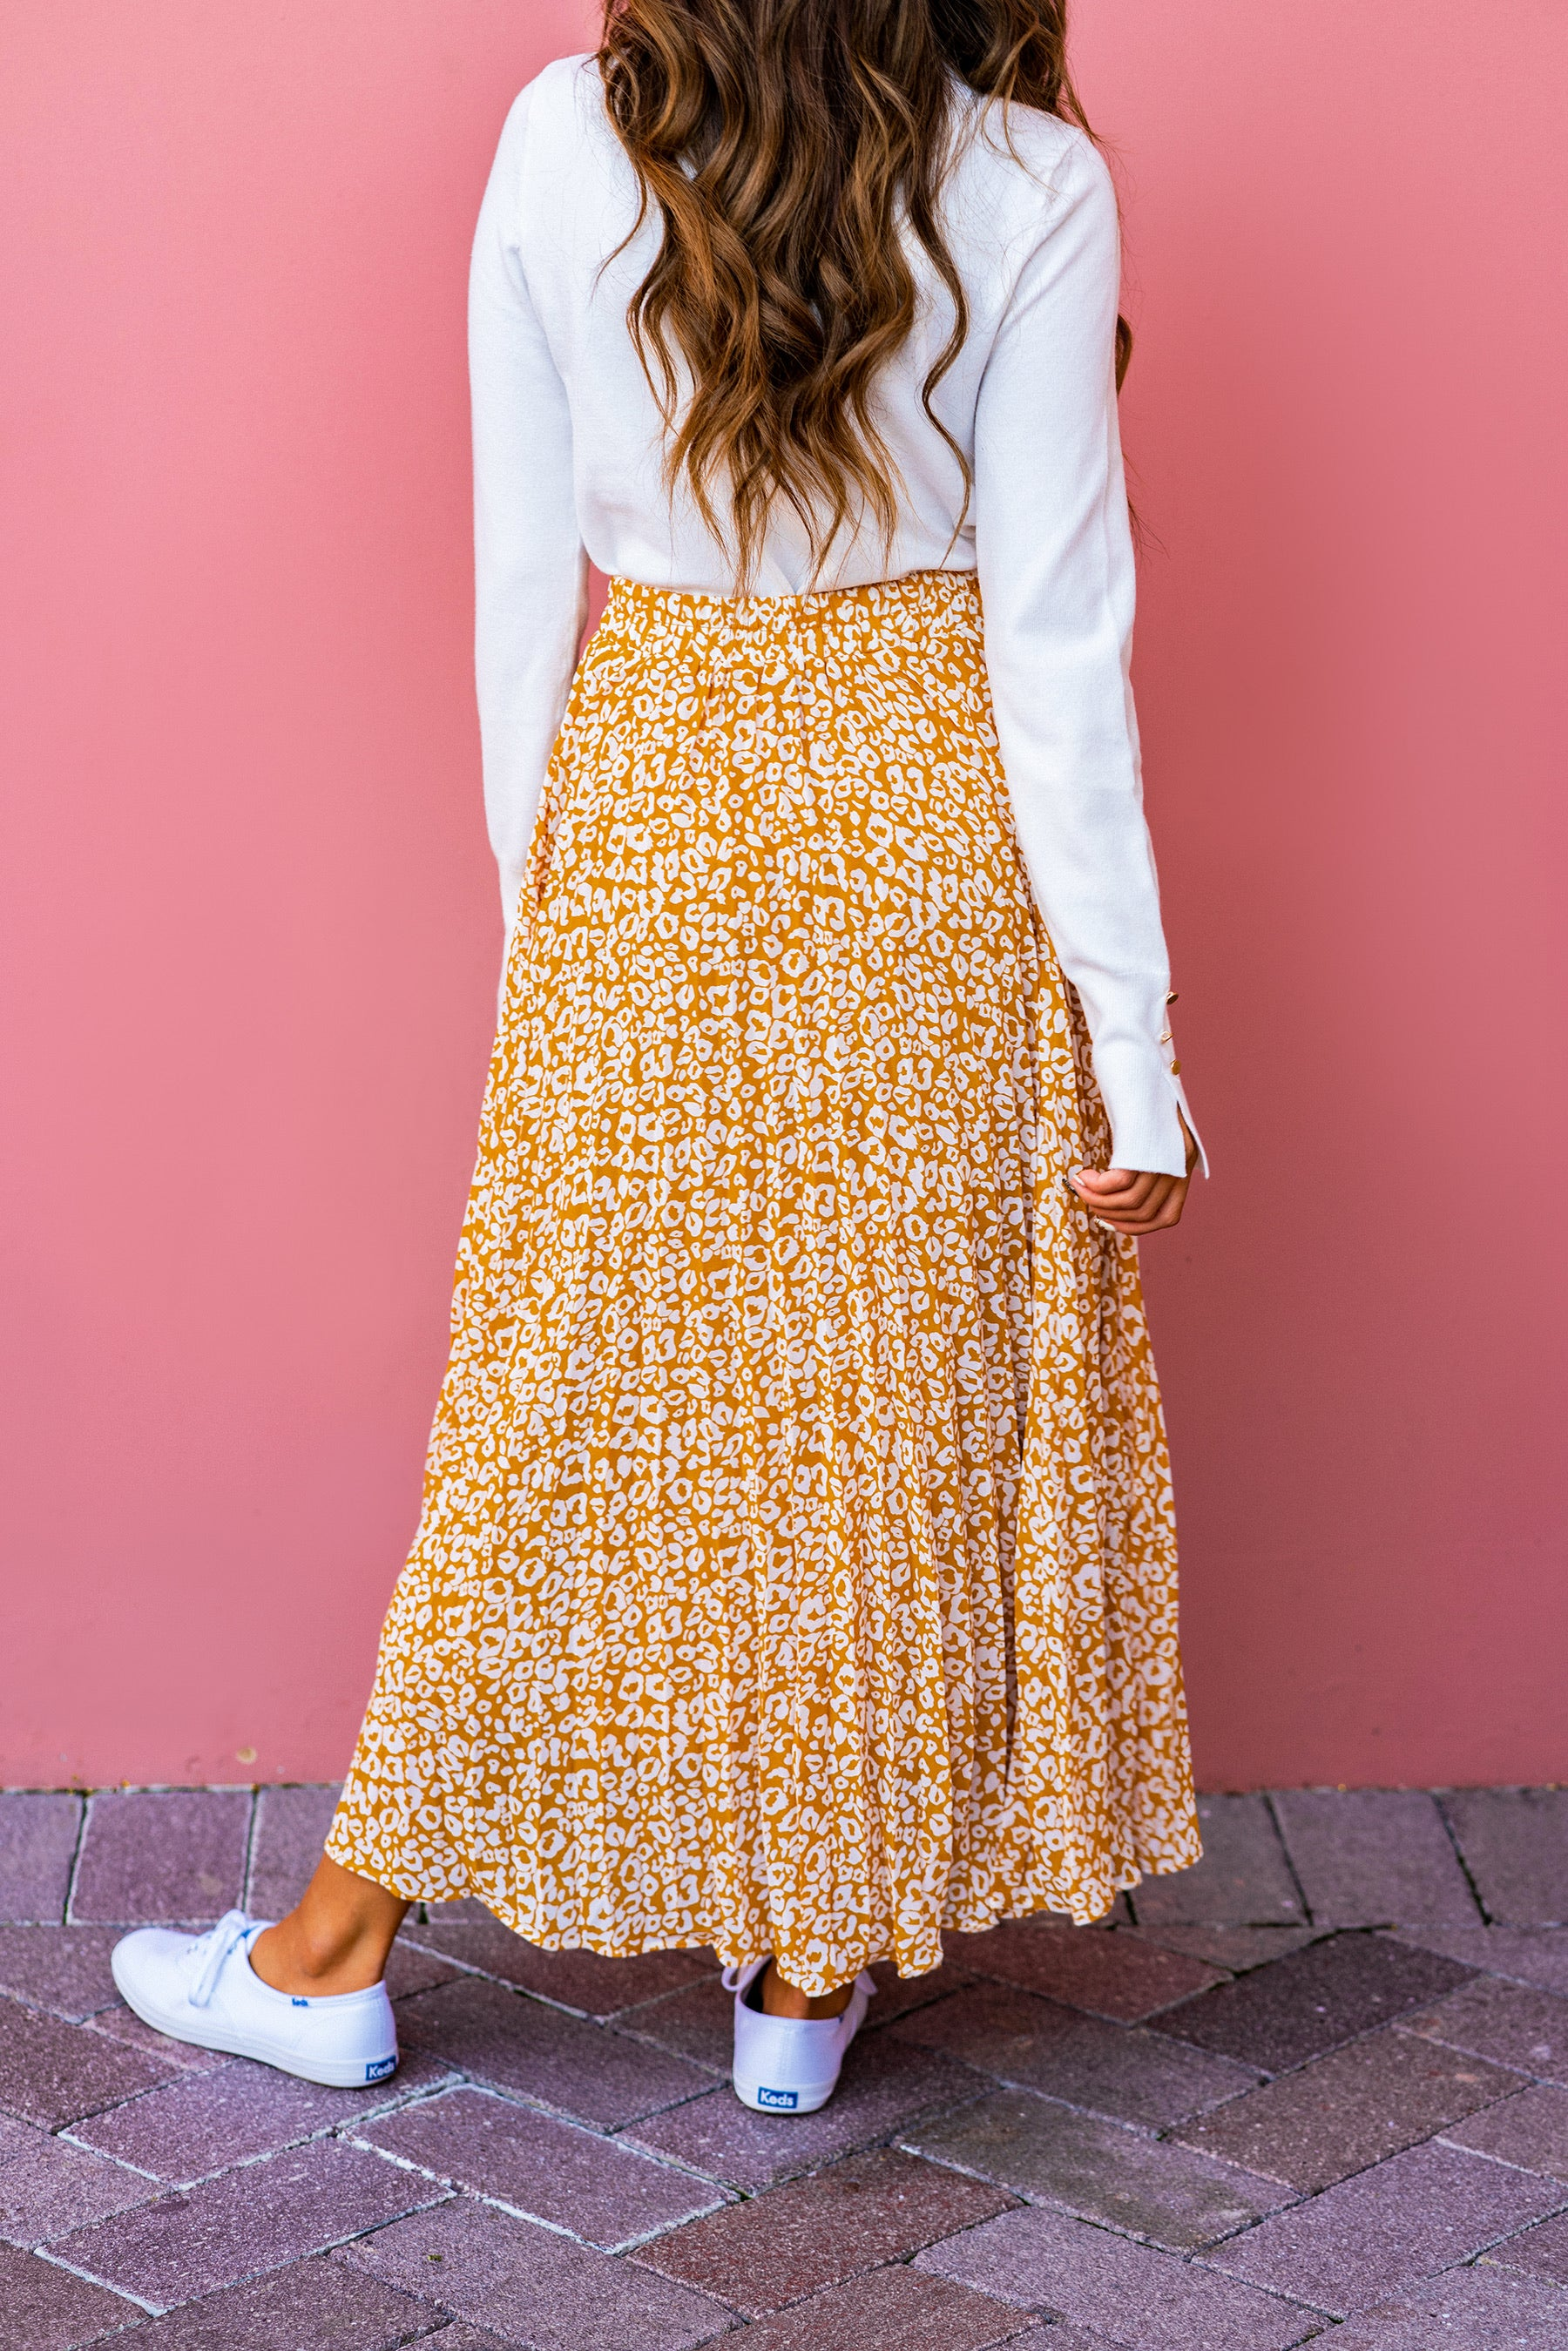 THE LILA LEOPARD PLEATED MIDI SKIRT IN MARIGOLD